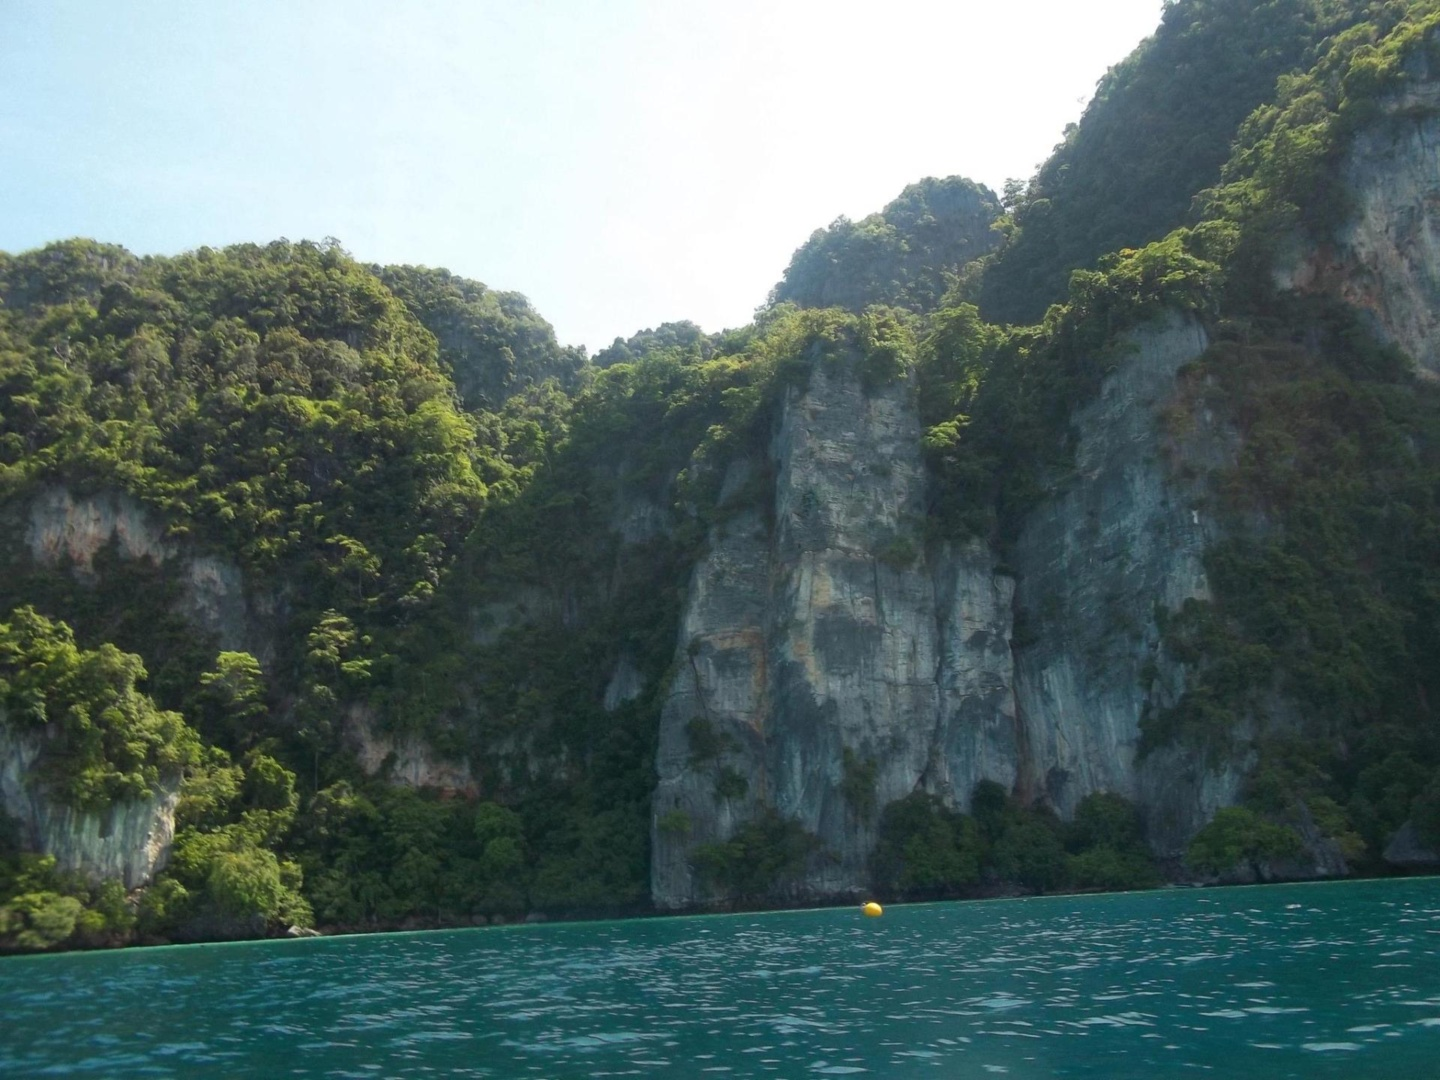 Wanderlust bee backpacking Thailand Koh phi phi part two